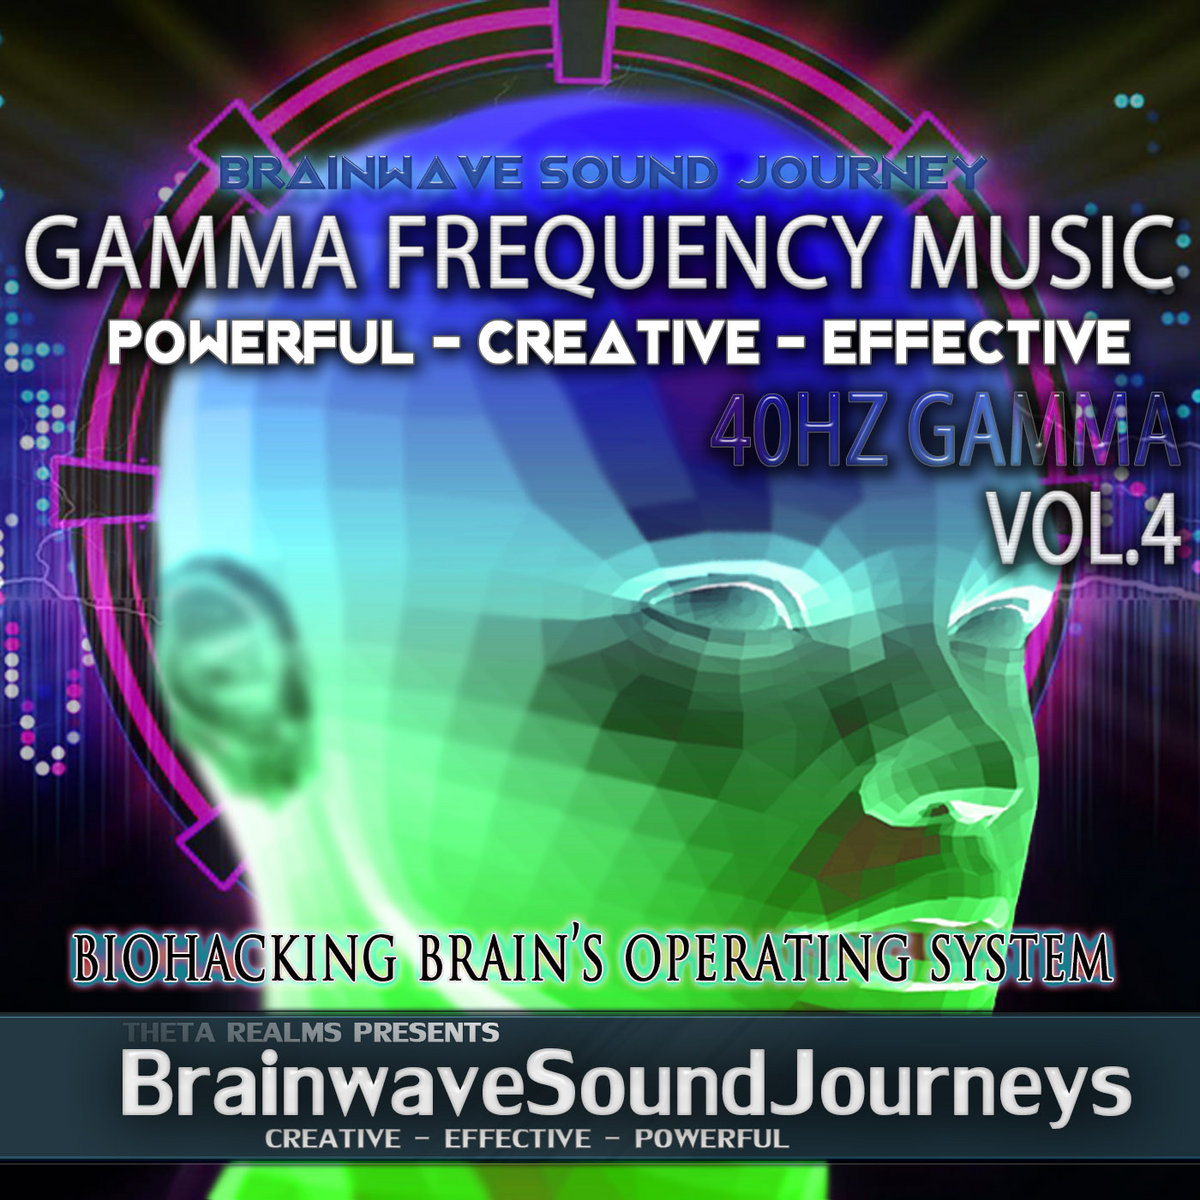 BIOHACKING YOUR BRAIN For Peak PREFERENCE   GAMMA FREQUENCY MUSIC V4